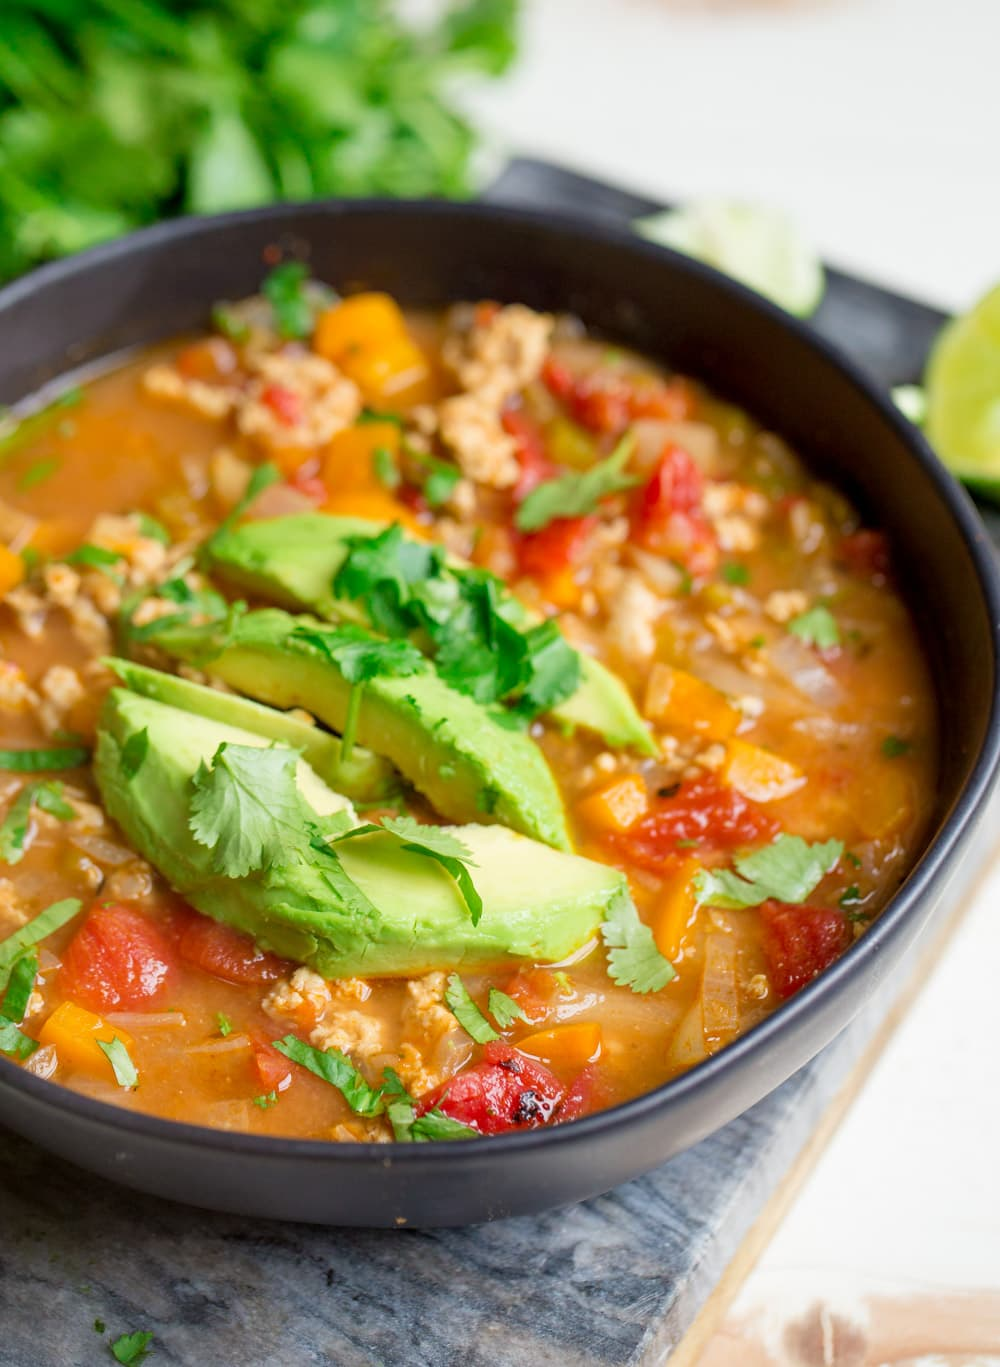 Ground Turkey Instant Pot Meals . Instant Pot Ground Turkey Taco Soup - Wholesomelicious